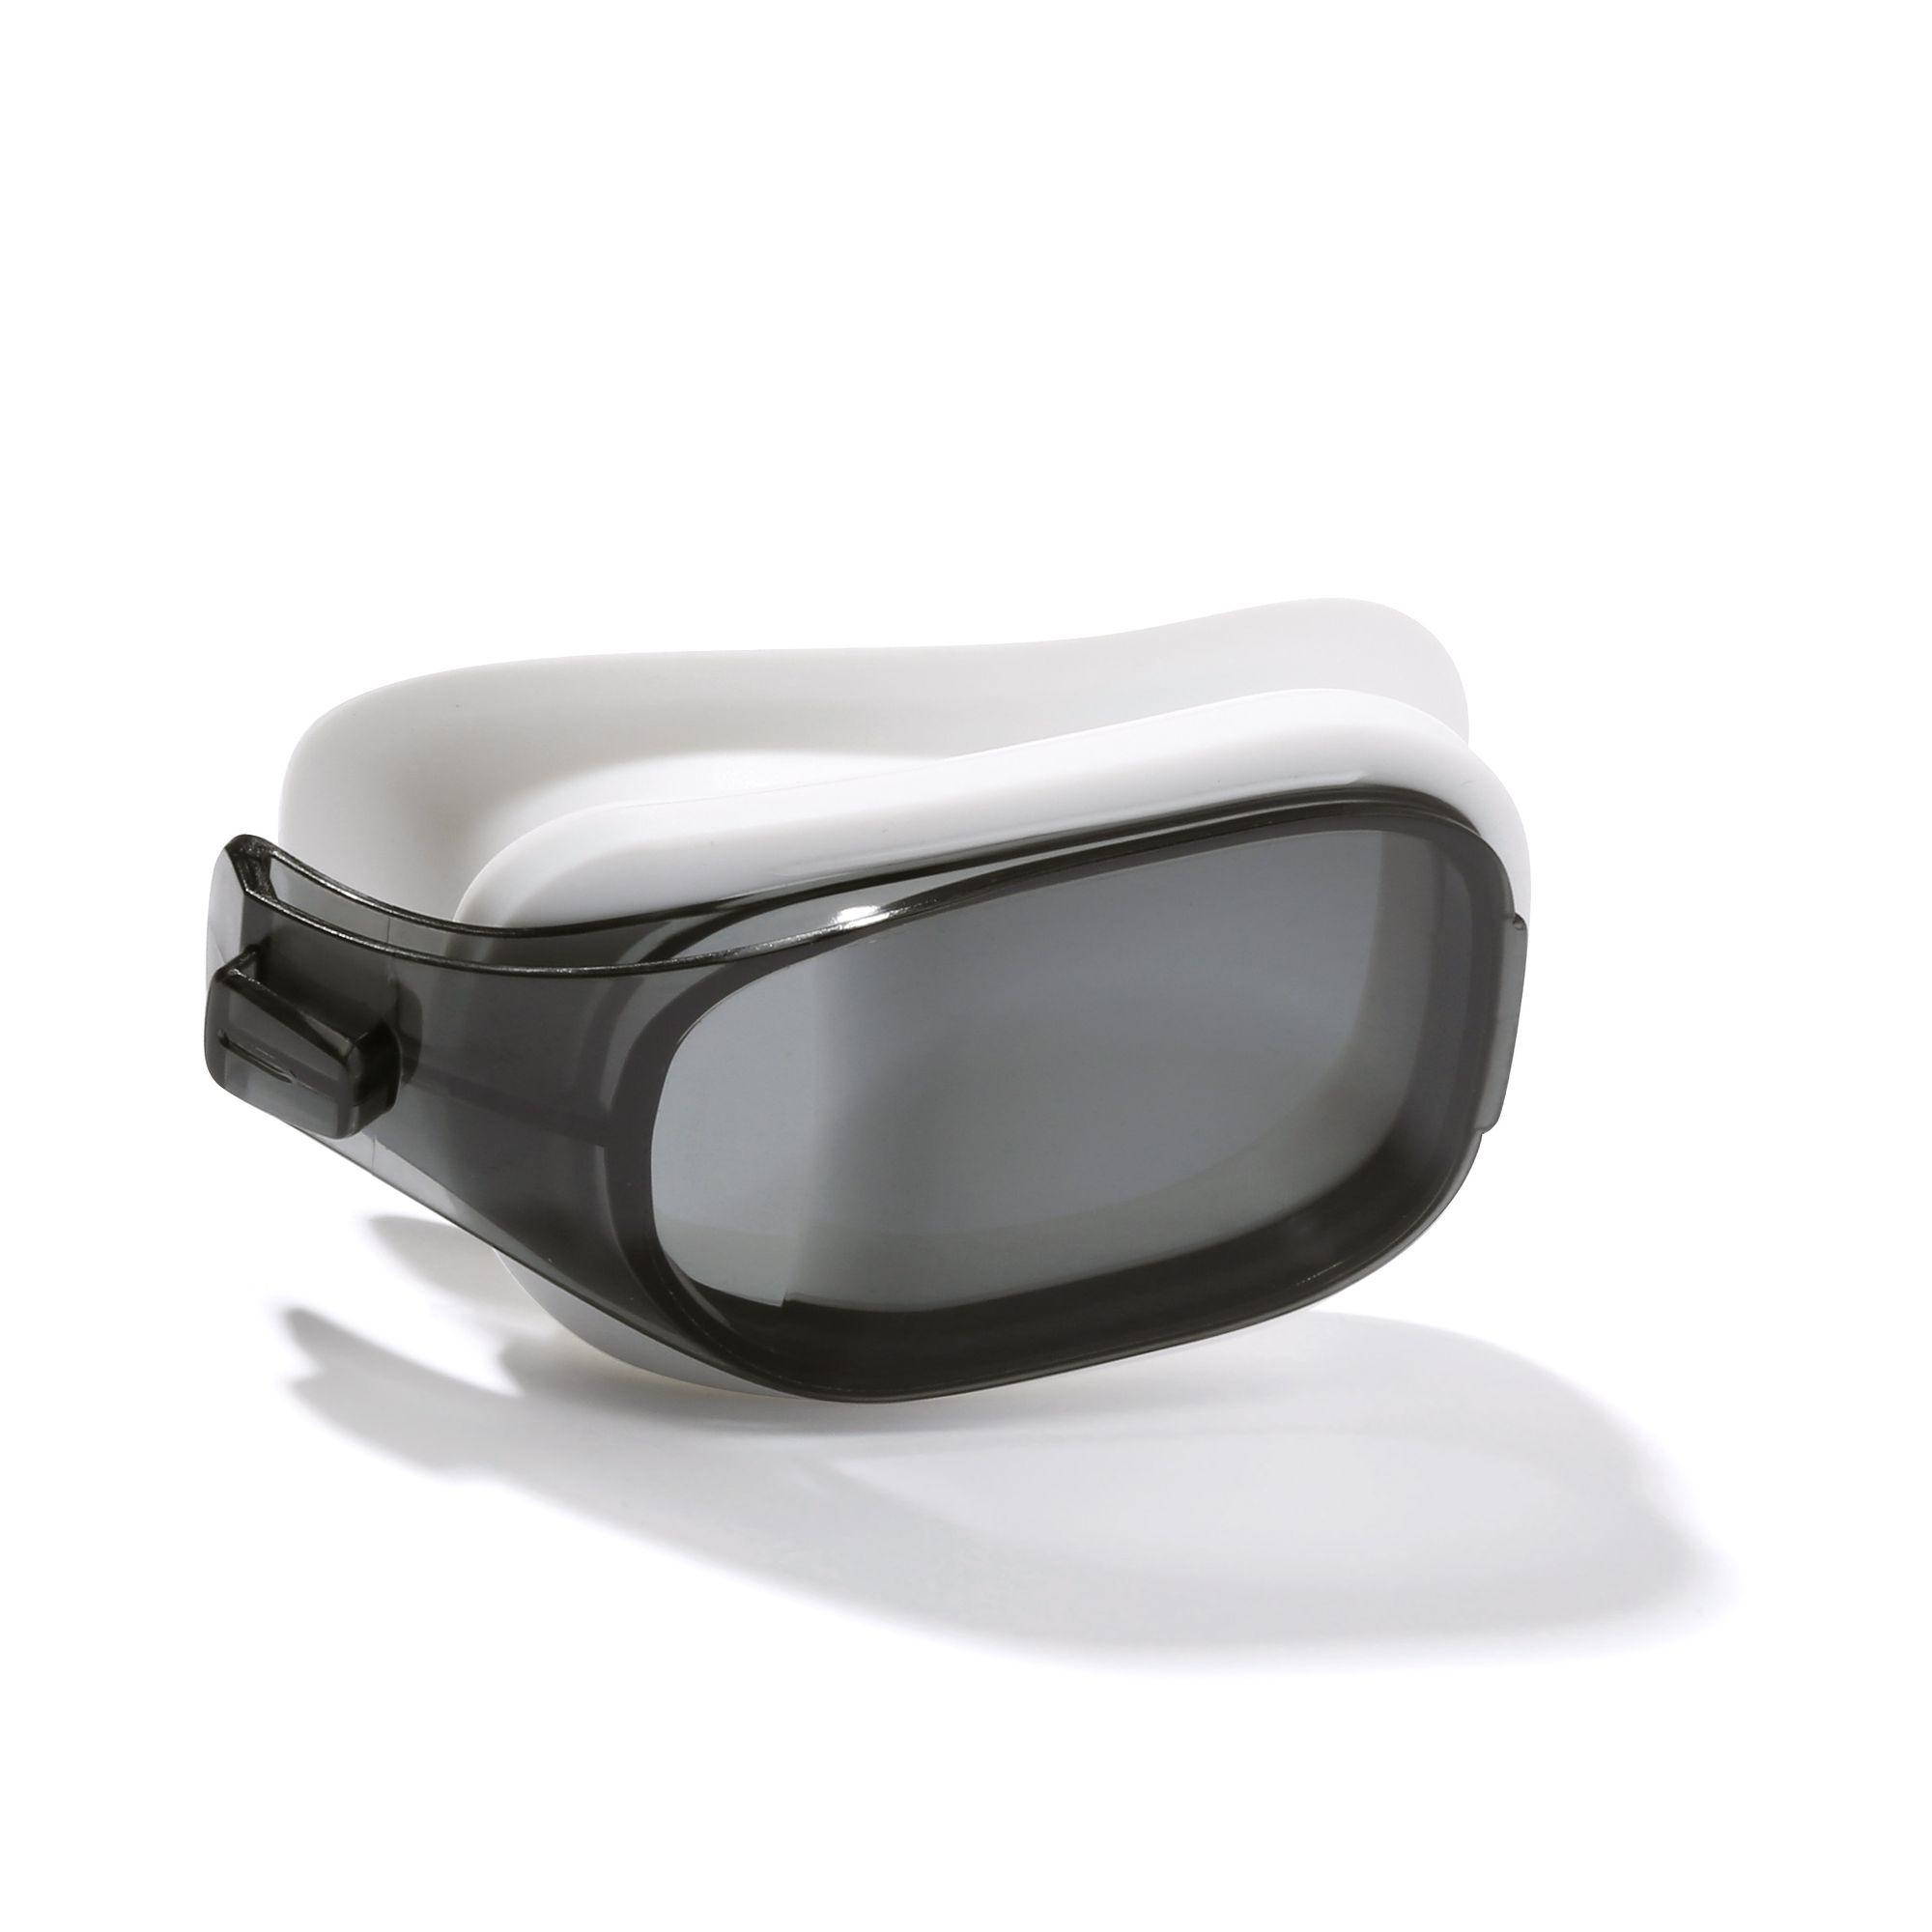 Three smoked lens for SELFIT 500 swimming goggles Size L